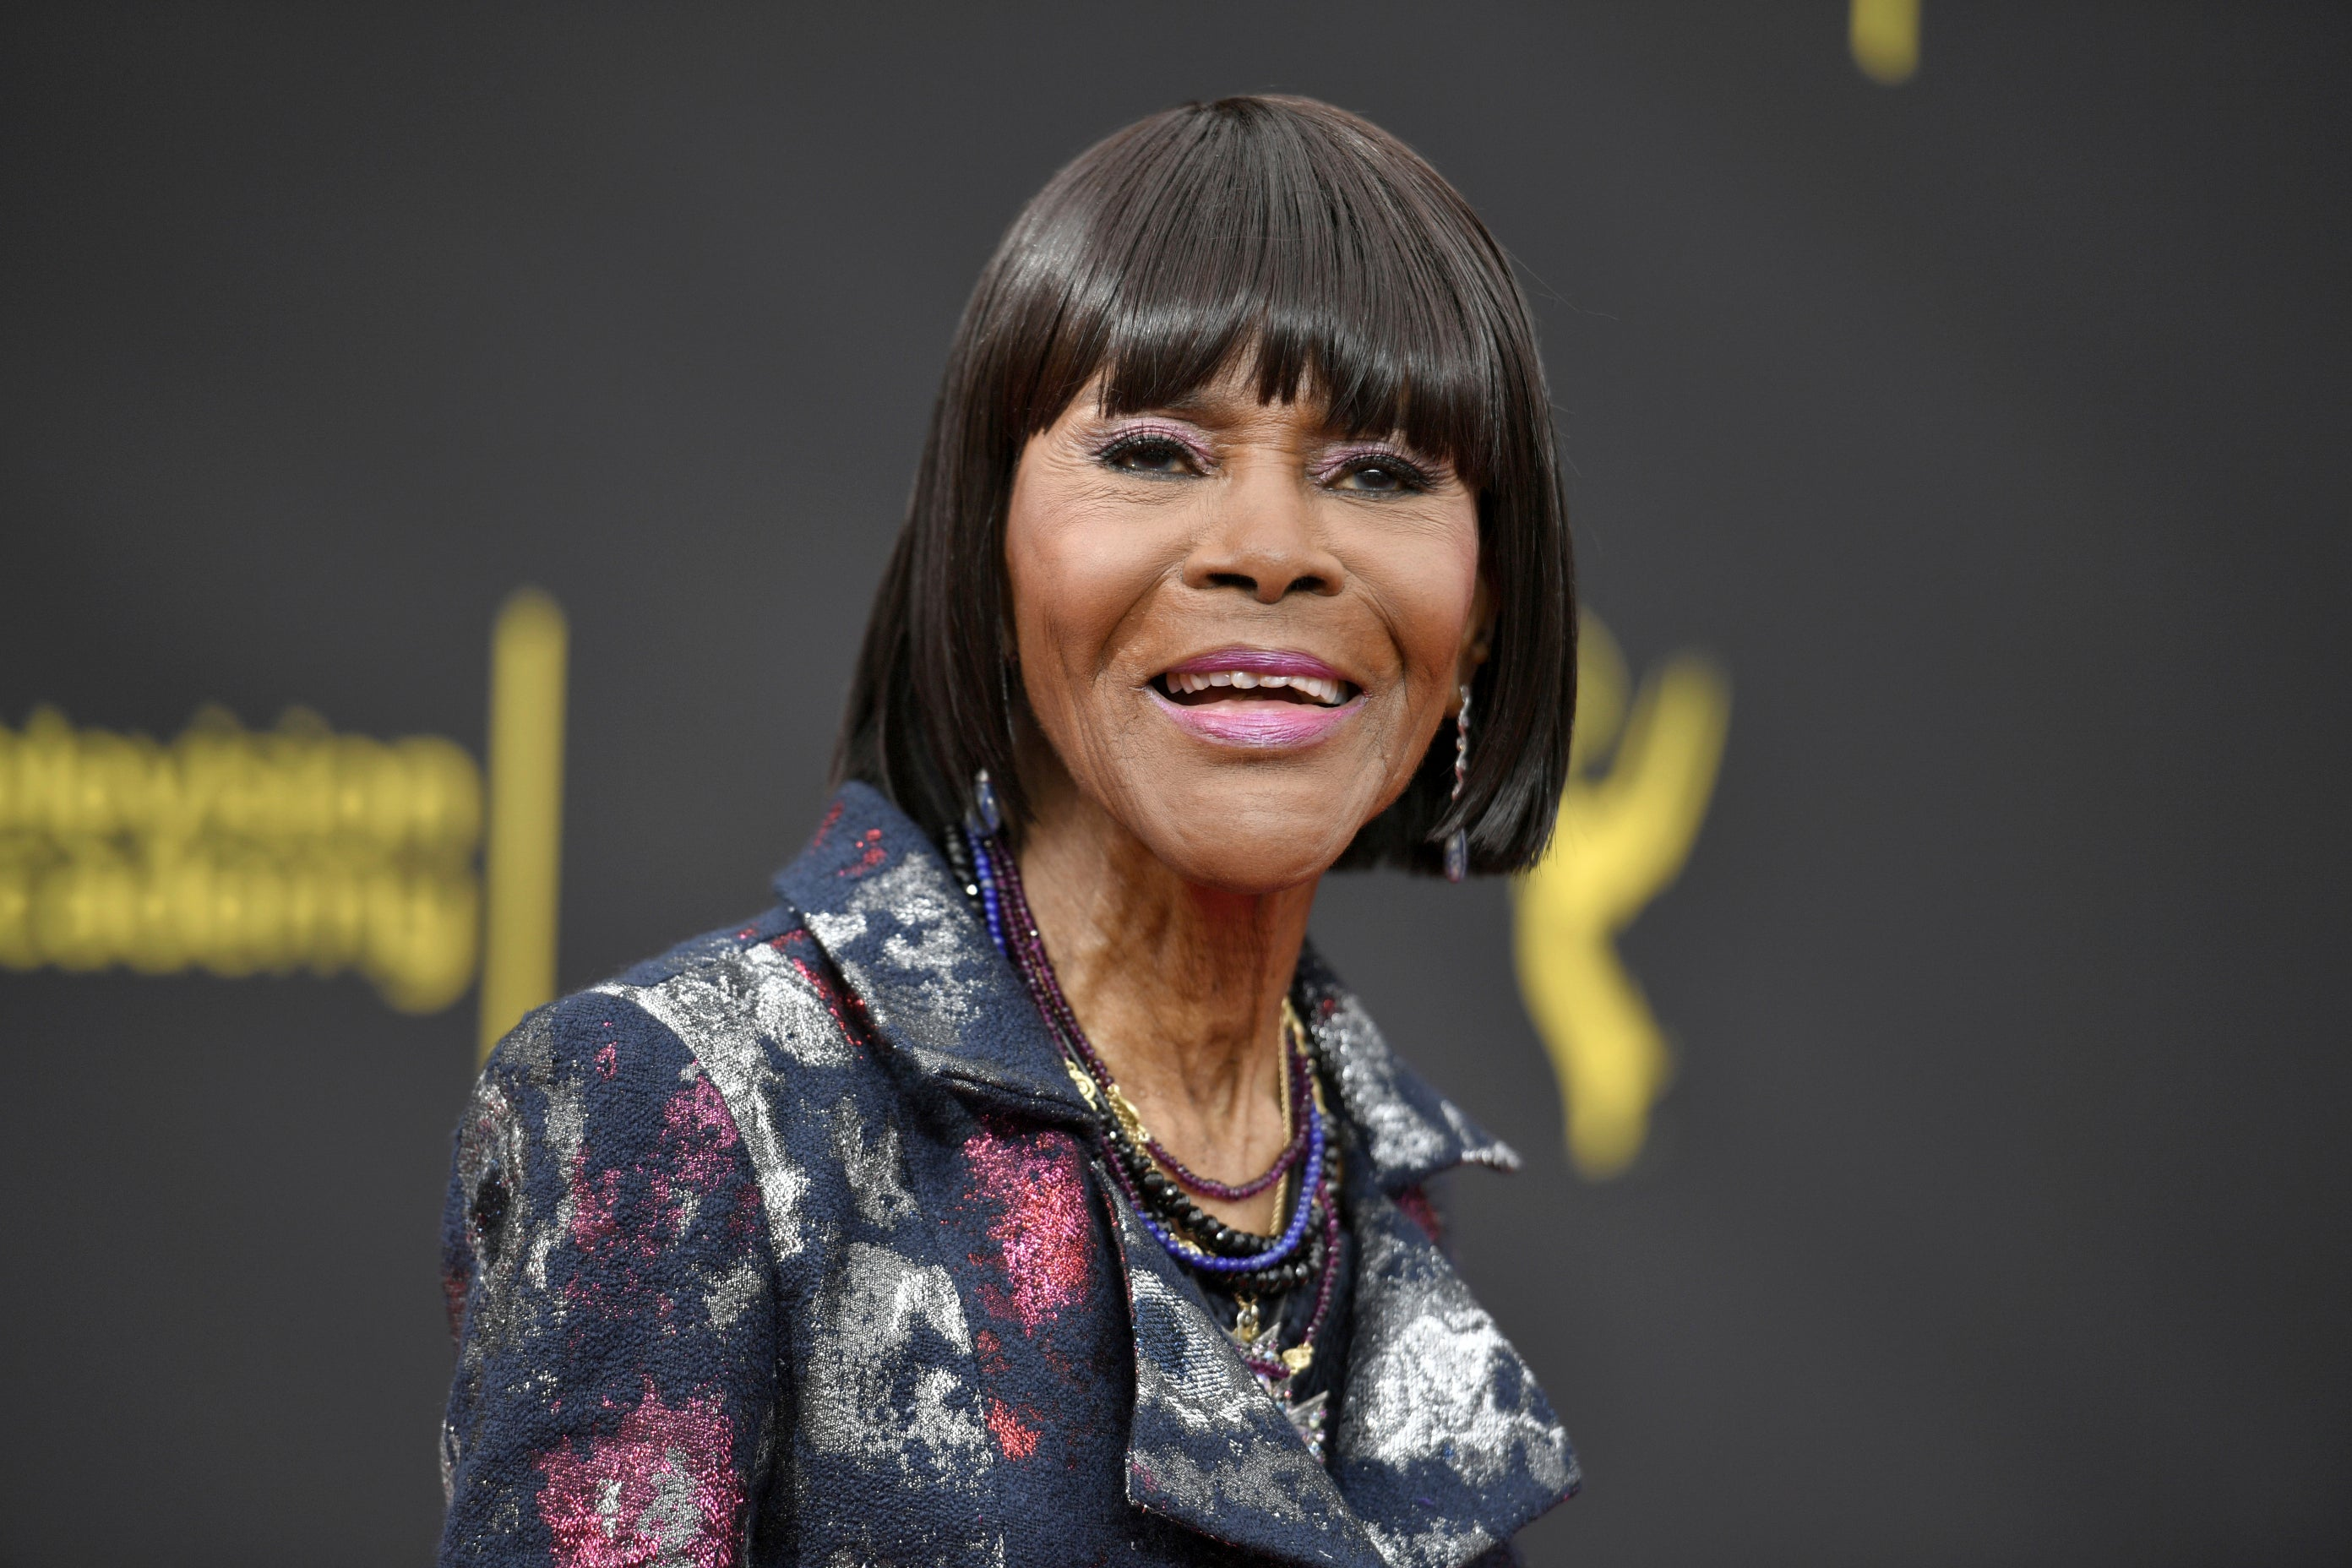 Cicely Tyson, groundbreaking award-winning actor, dead at 96 wife Cicely Tyson hearts nomination women